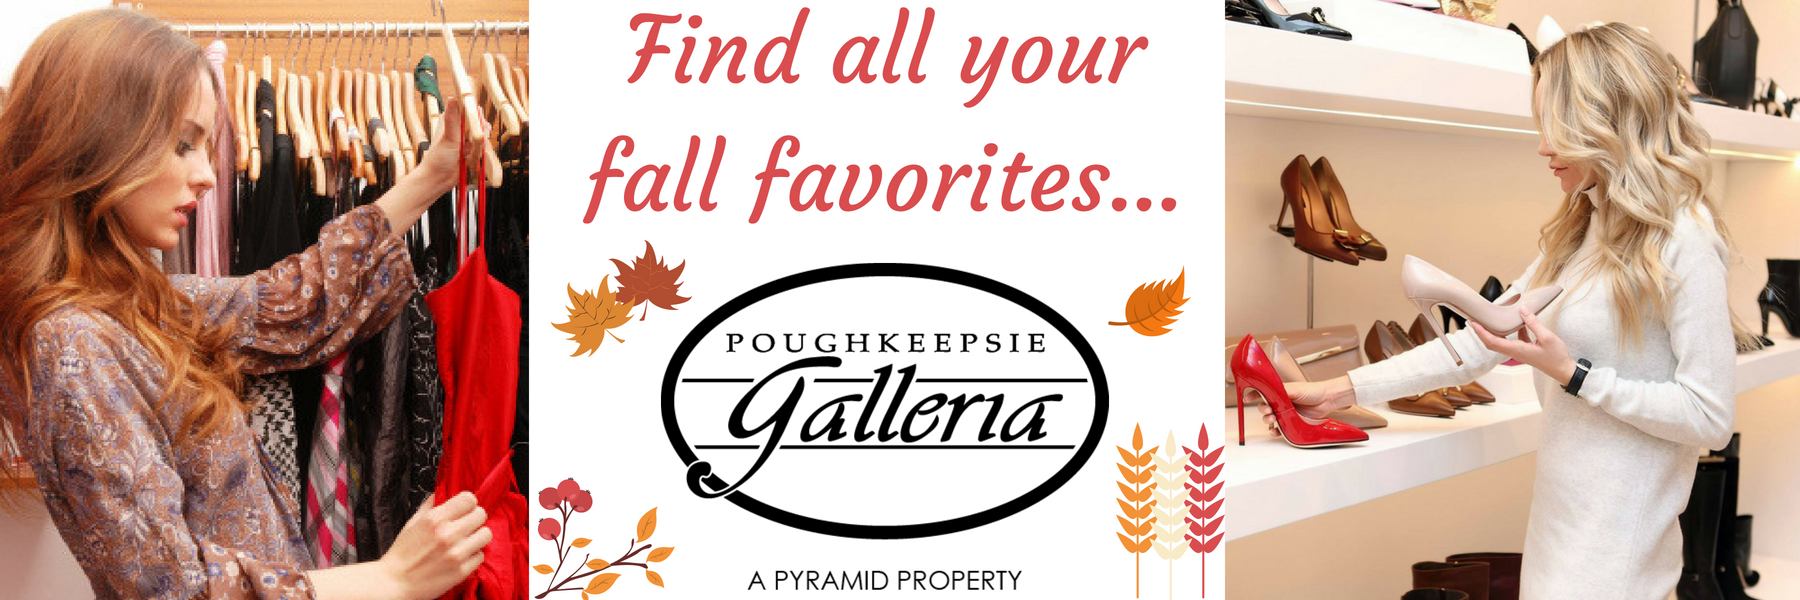 Find your fall favorites...